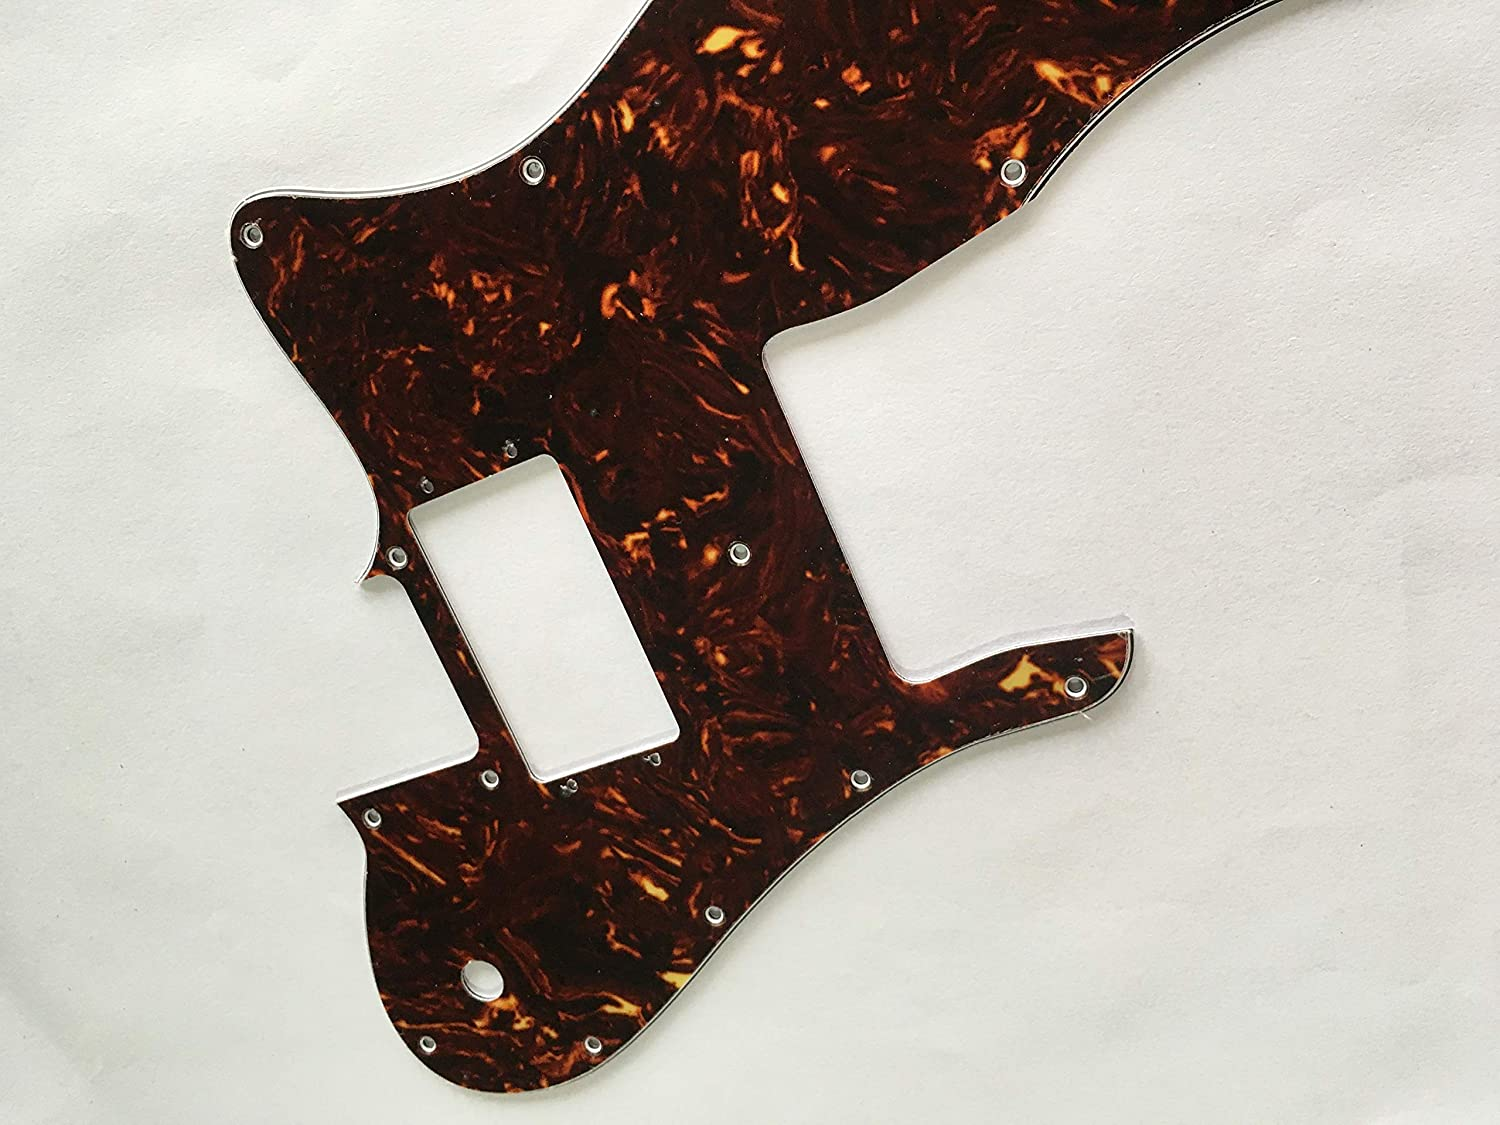 3 Ply Black Custom For 72 Telecaster Re-lssue Wide Range Style Electric Guitar Pickguard